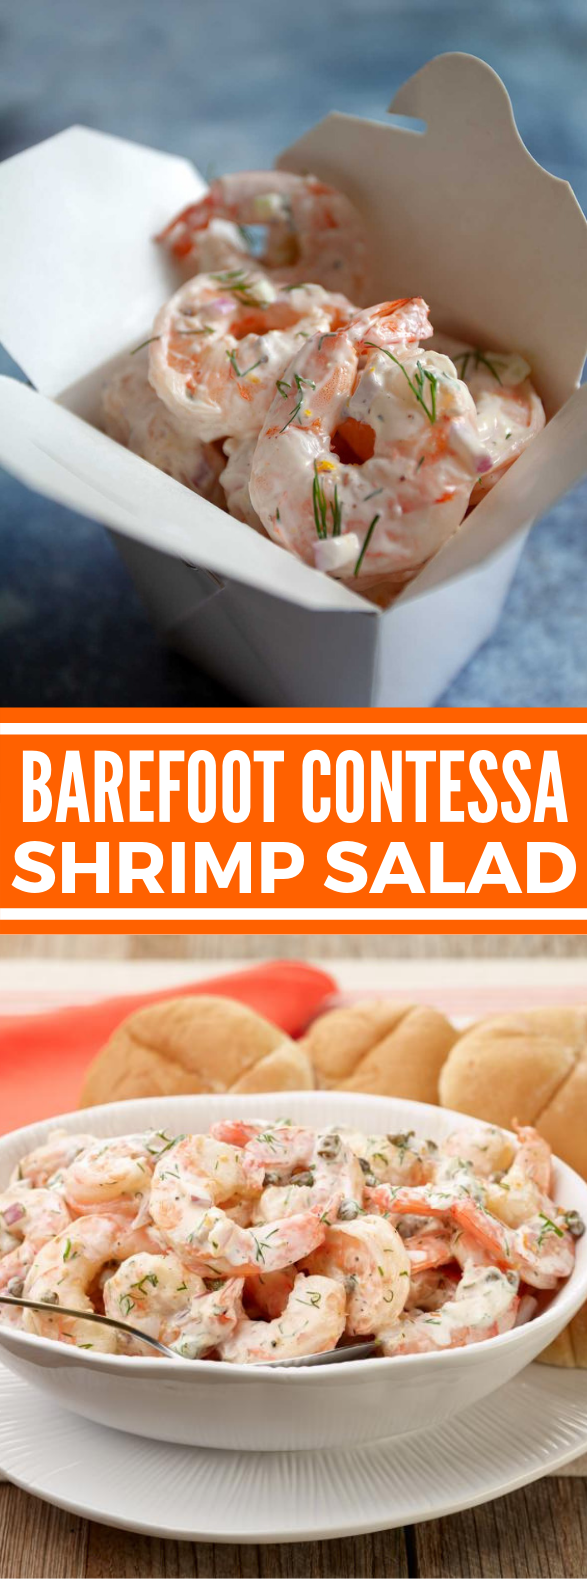 BAREFOOT CONTESSA SHRIMP SALAD #dinner #lunch